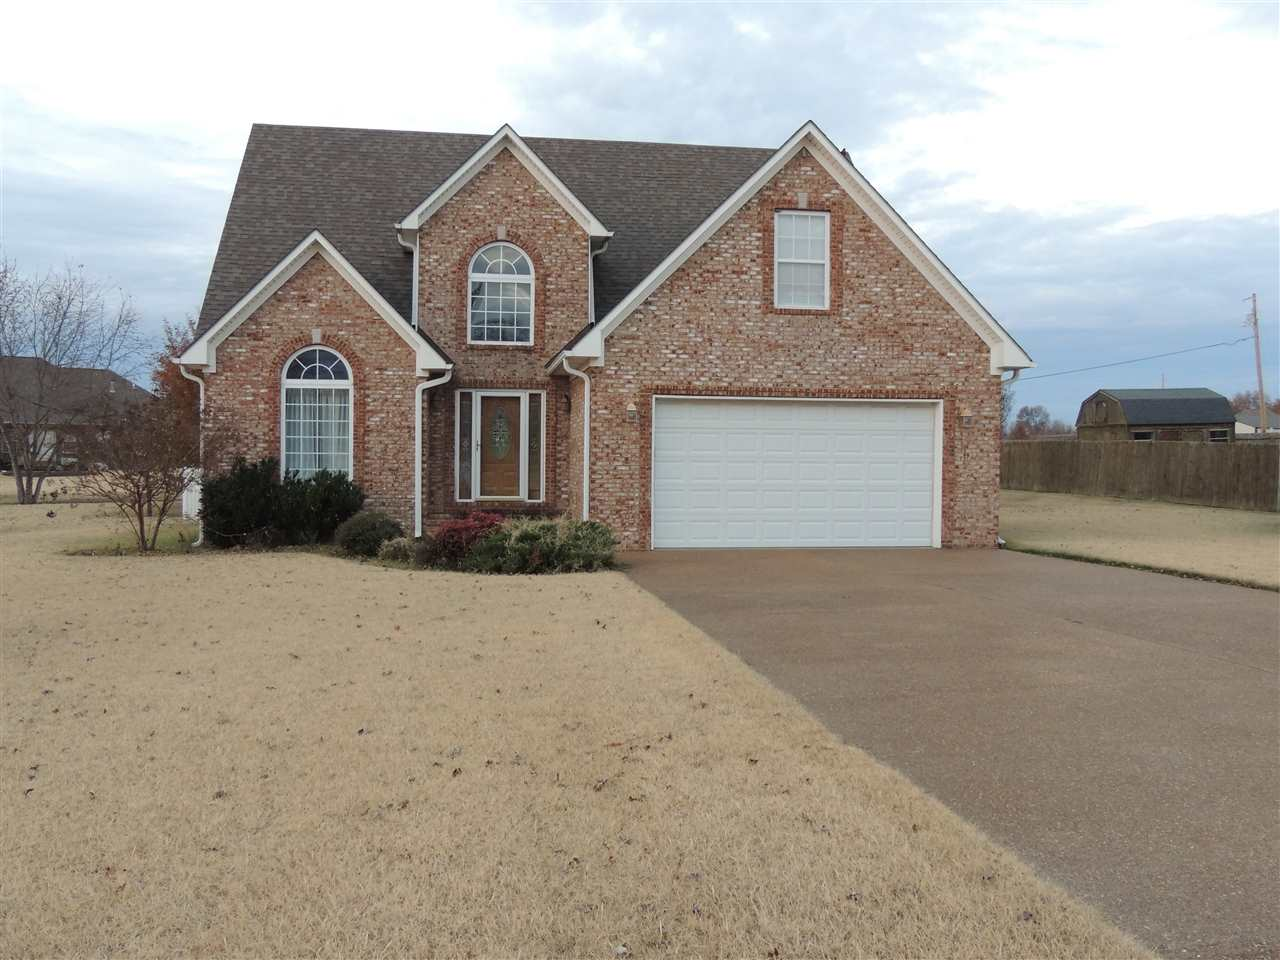 1104 Crowne Pointe Dr,Newbern,Tennessee 38059,4 Bedrooms Bedrooms,2 BathroomsBathrooms,Residential,1104 Crowne Pointe Dr,180662